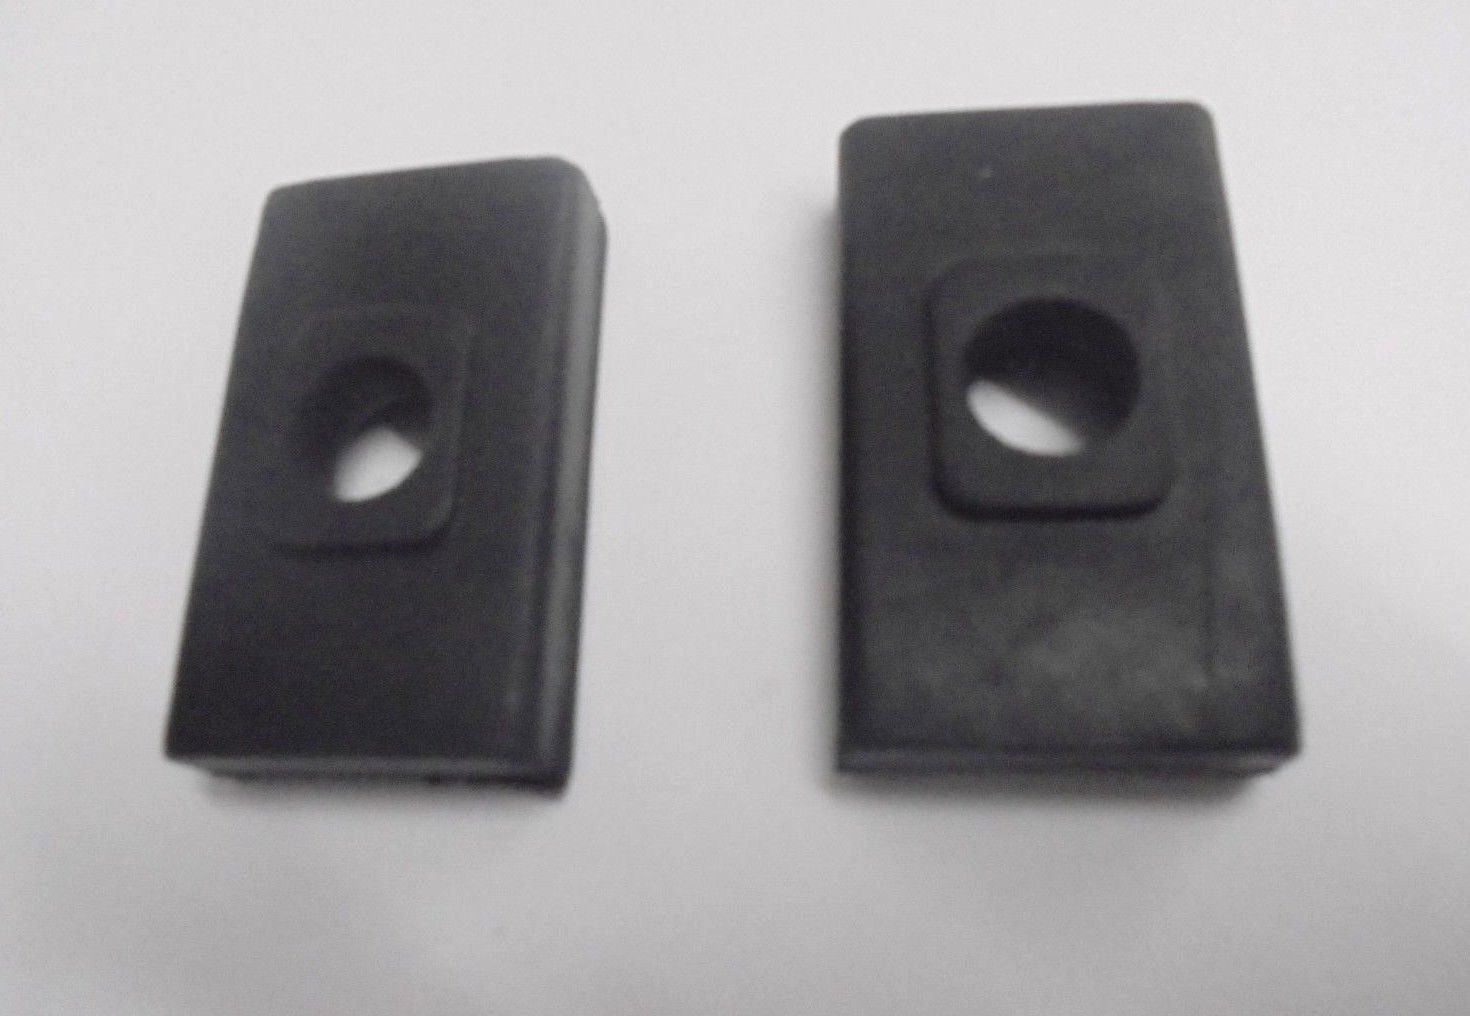 GEARBOX MOUNTS SIDE BUFFERS x2 (MG Magnette) (Mk3 & Mk4) (1959- 68)